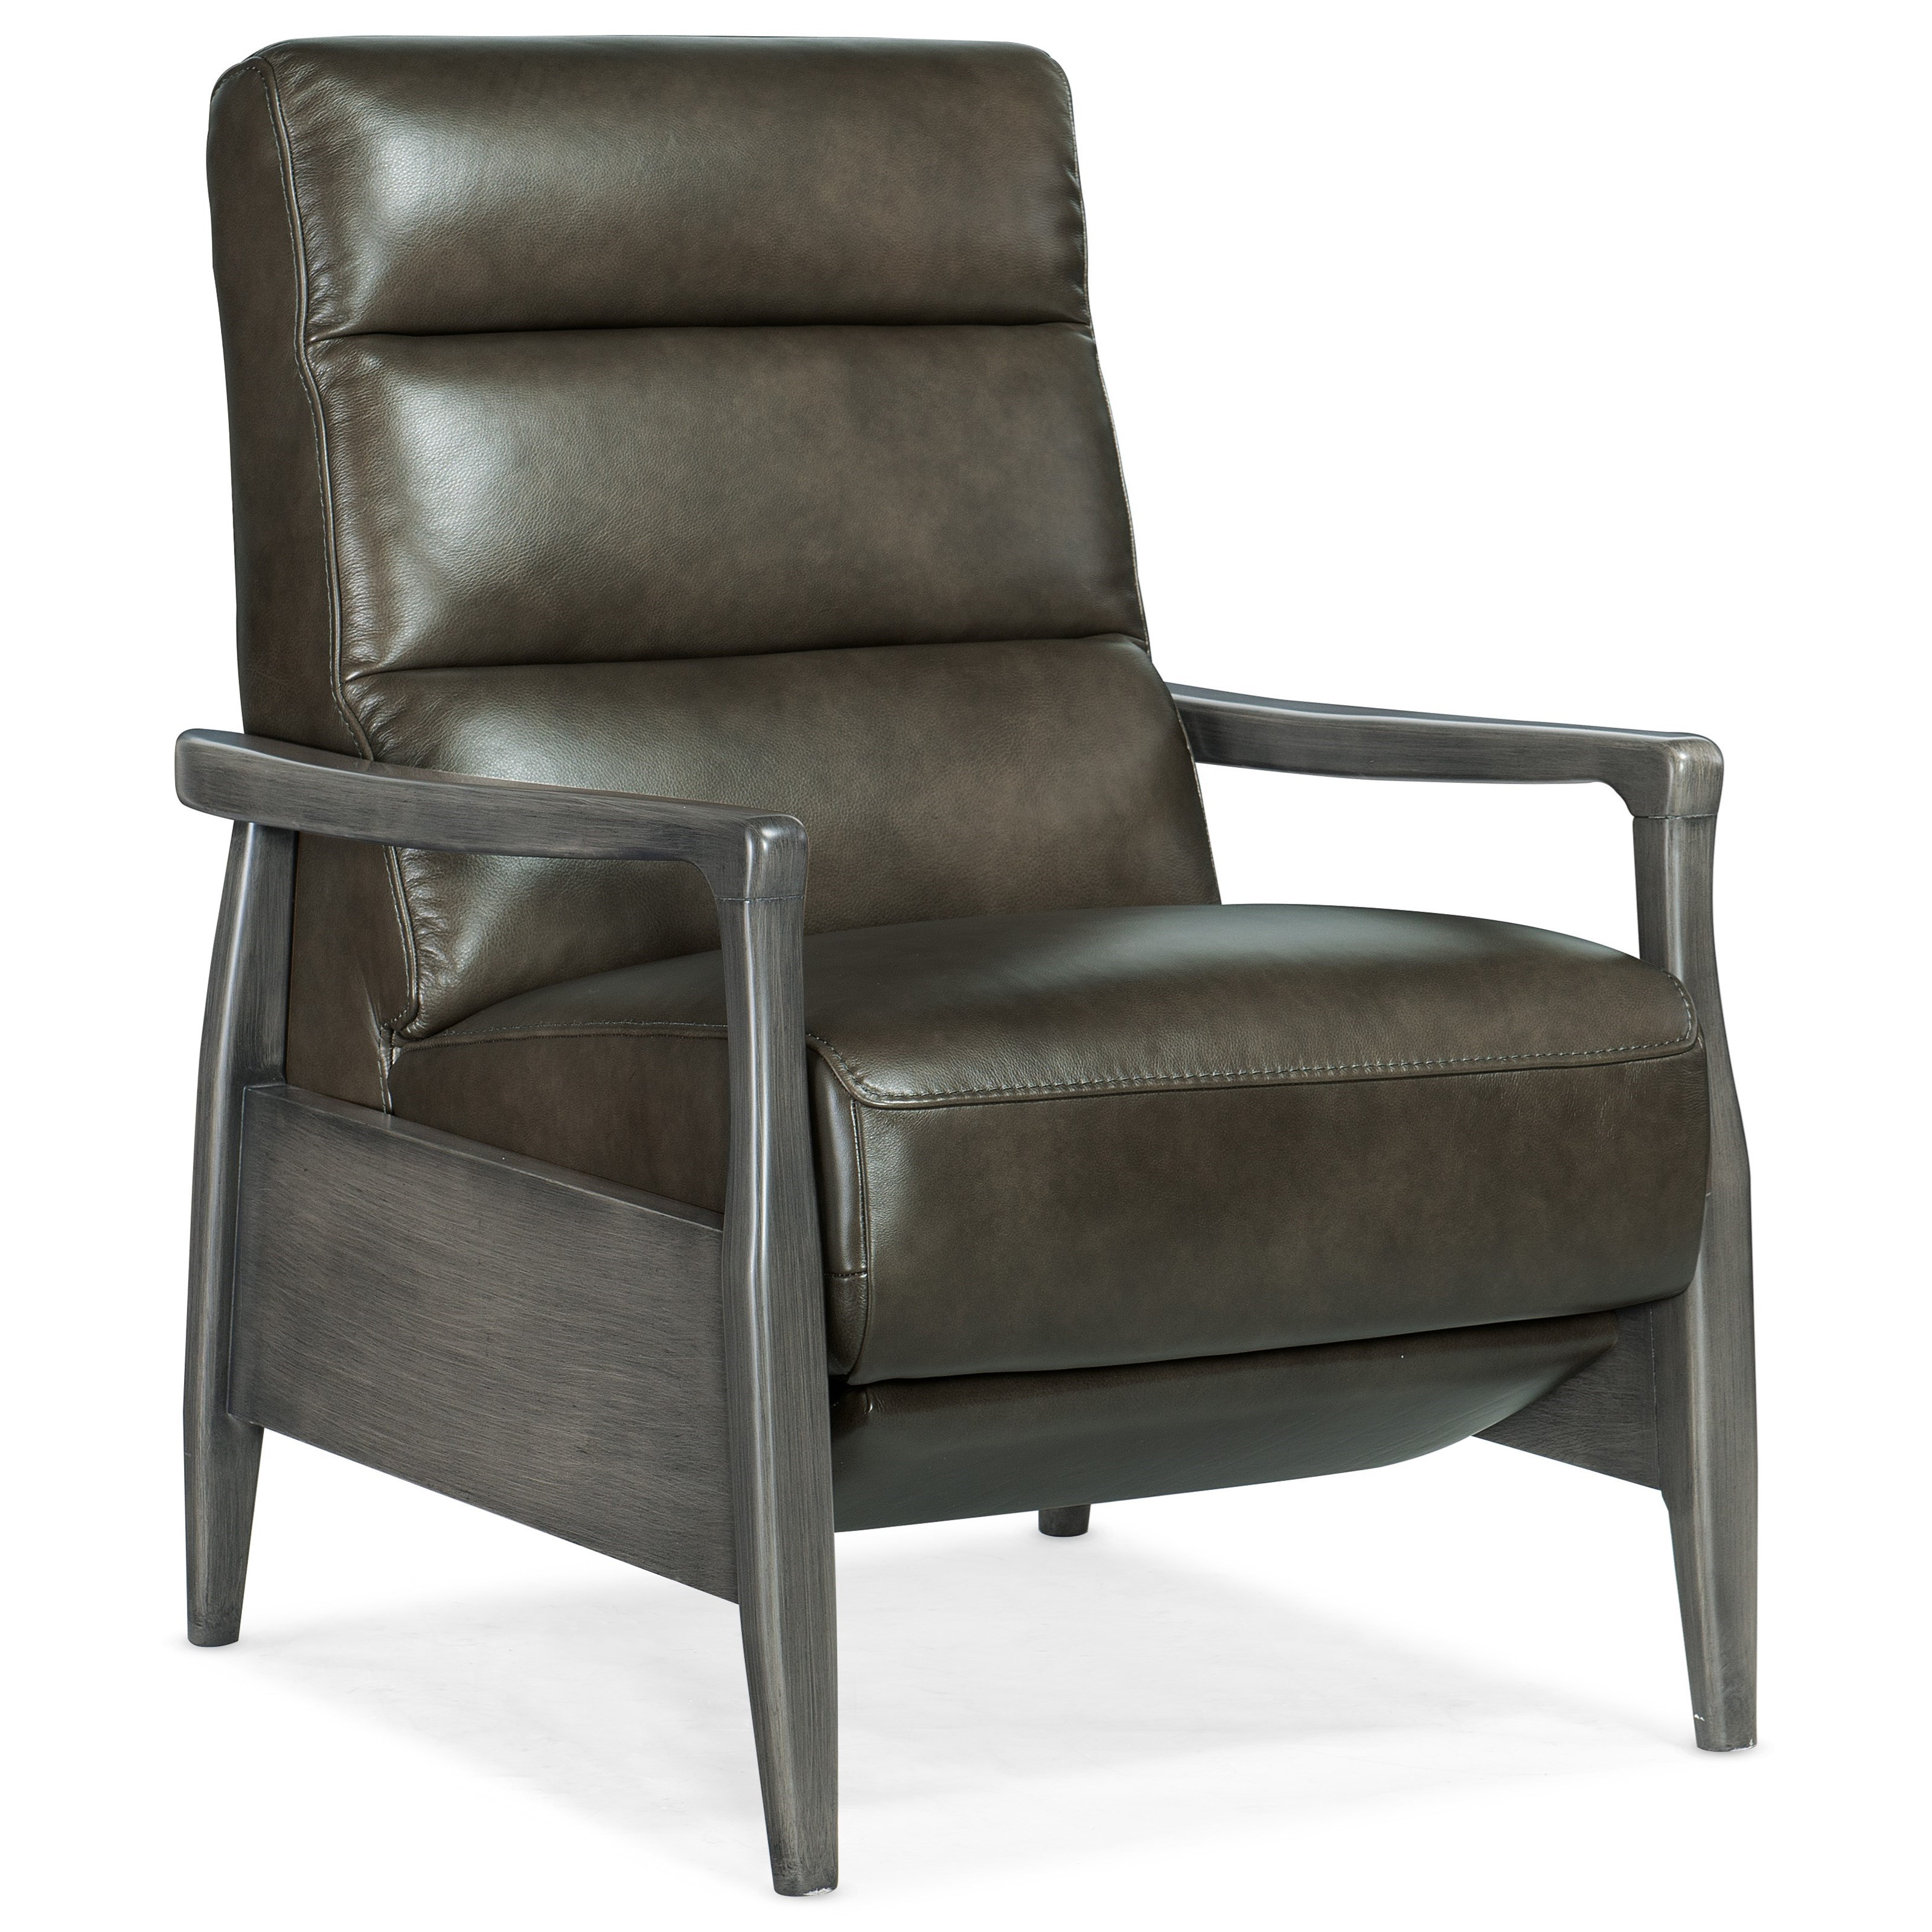 Reclining Chairs Pushback Recliner with Exposed Wood by Hooker Furniture at Baer's Furniture